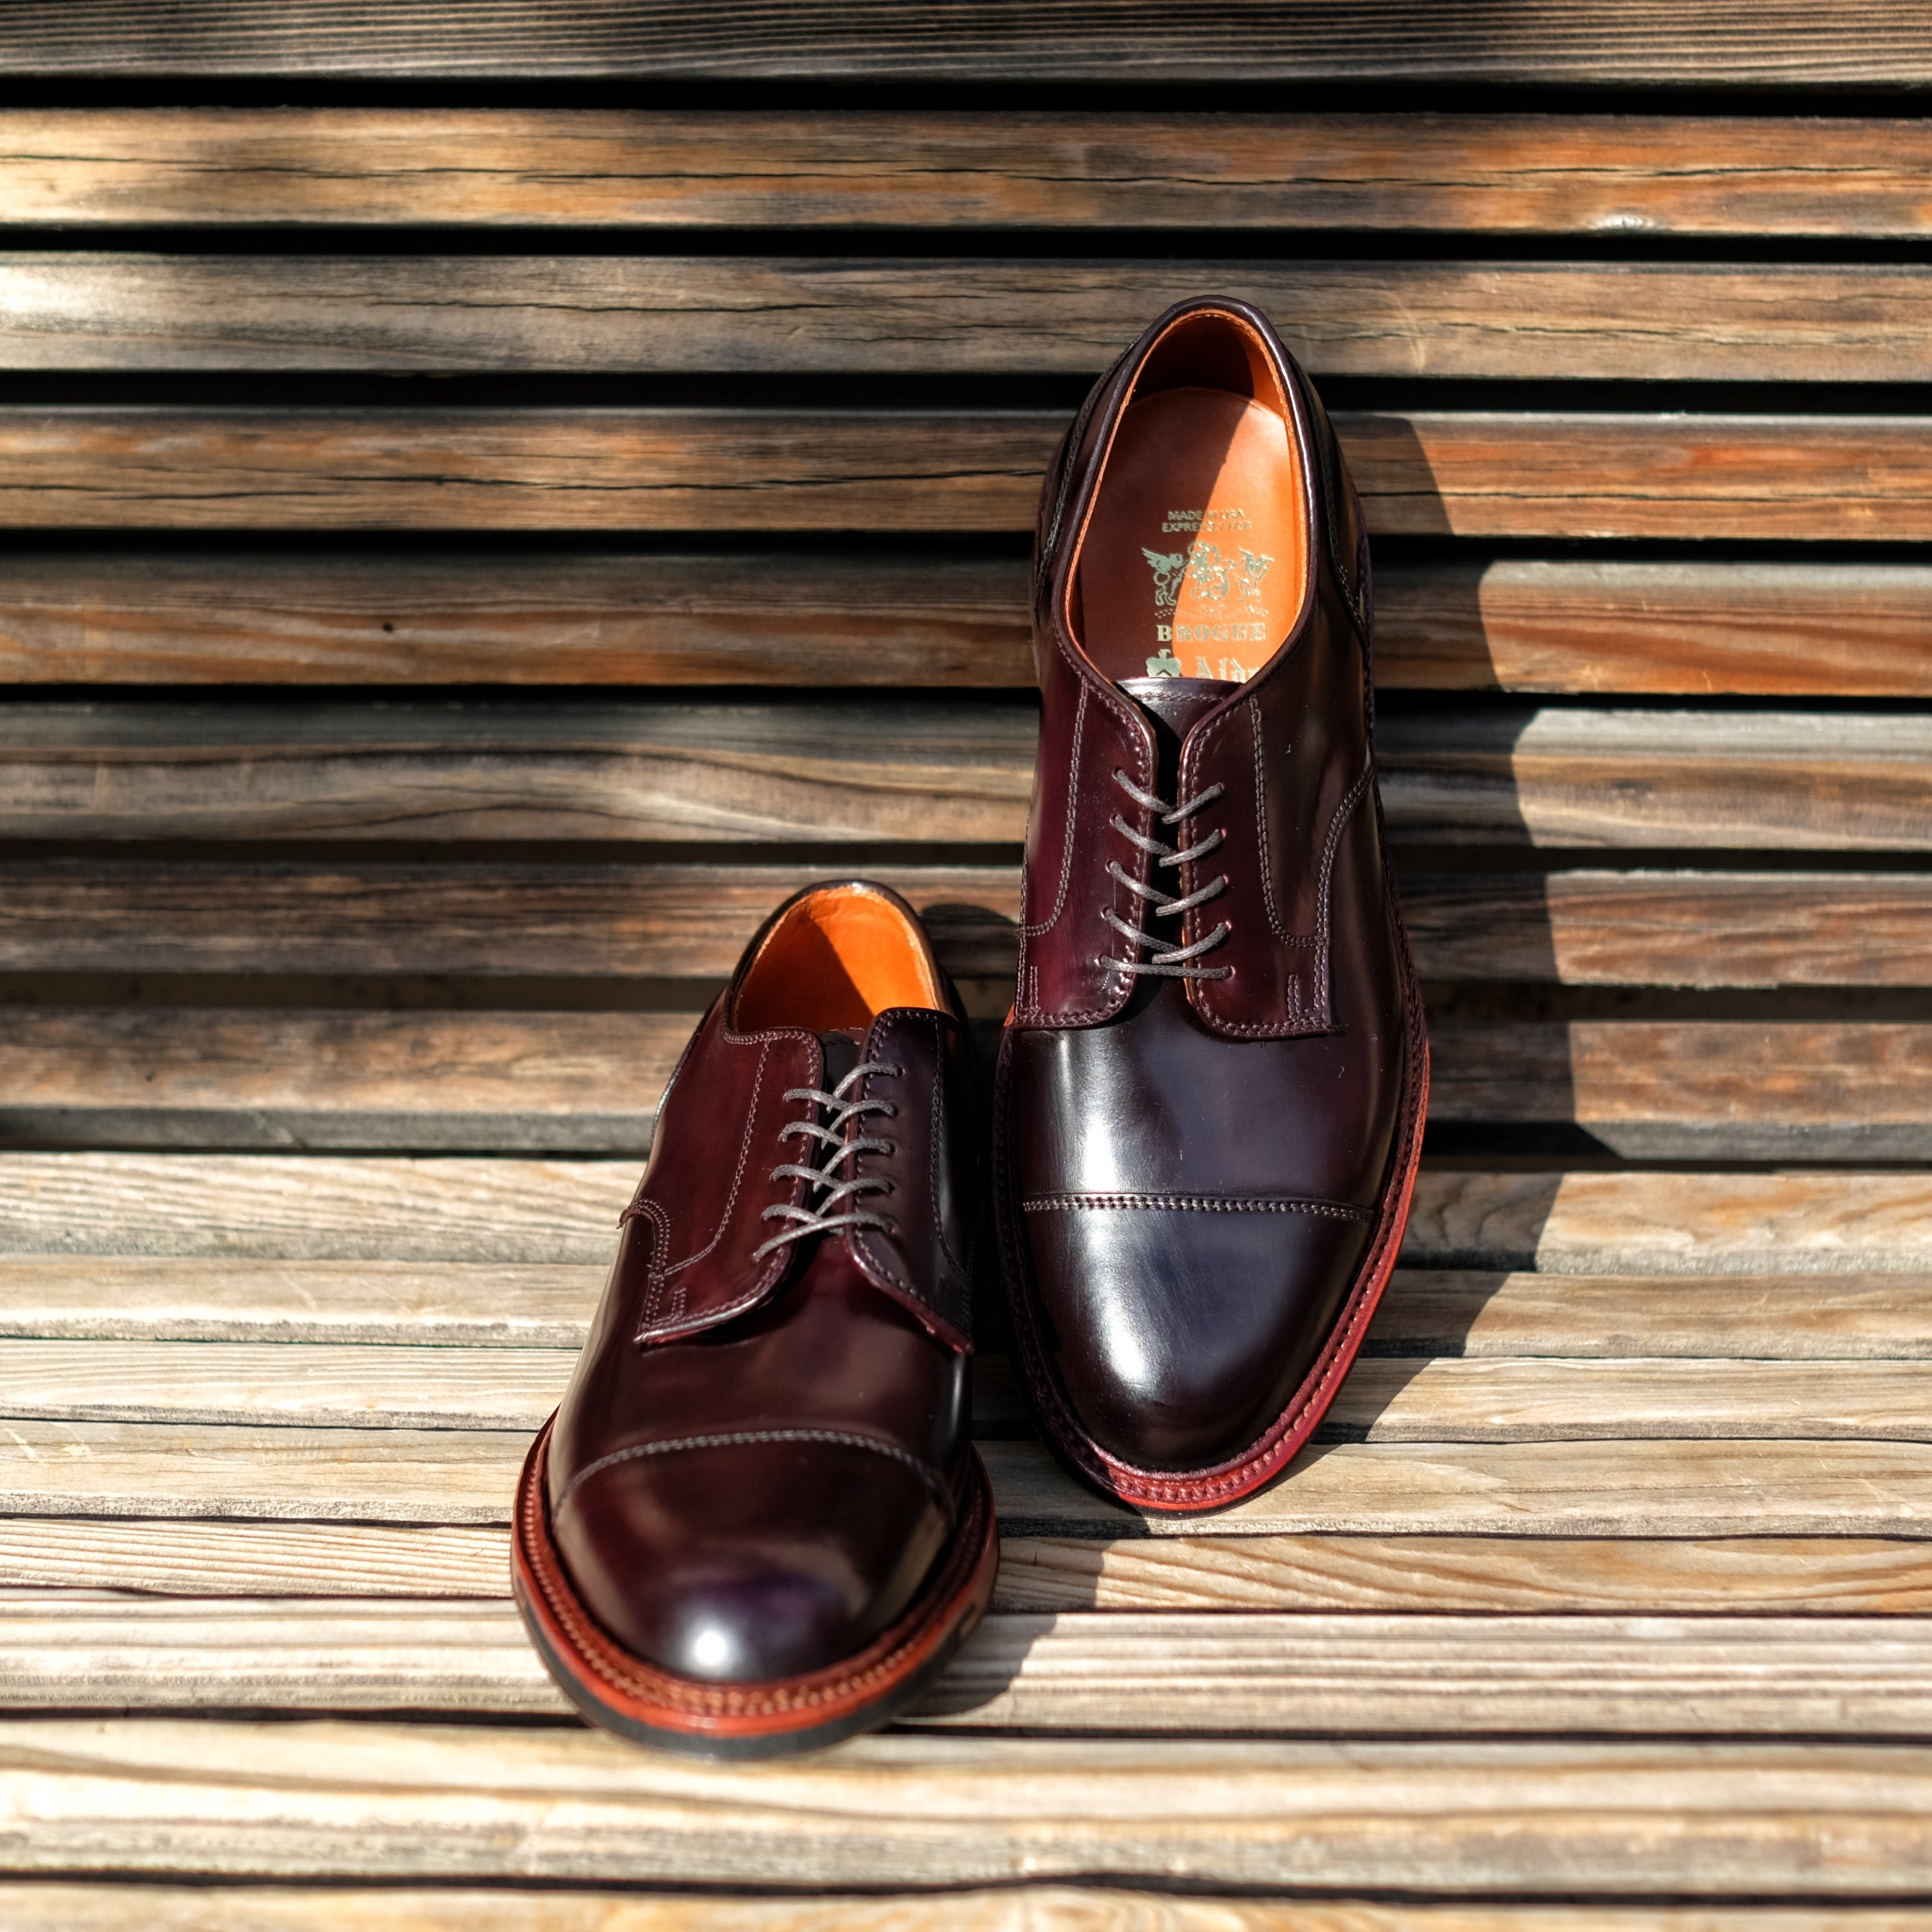 Alden x Brogue Cap Toe Service Blucher